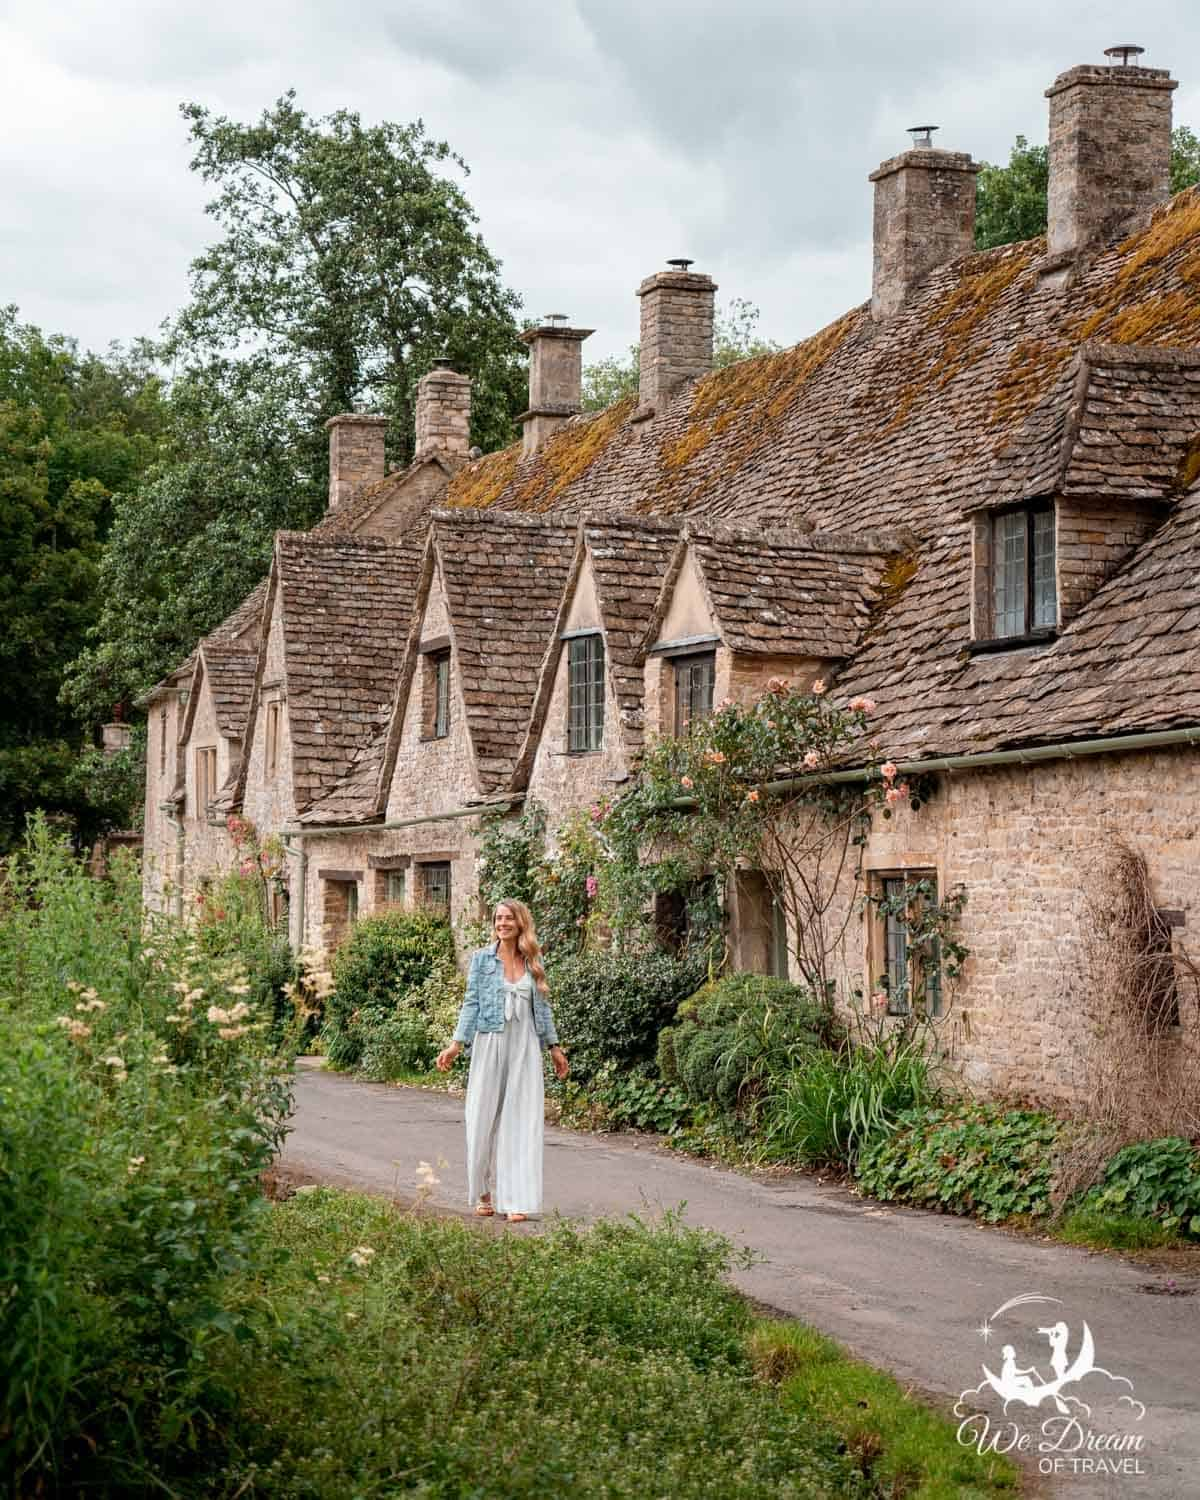 A girl walking along Arlington Row in the picturesque Cotswolds villages Bibury